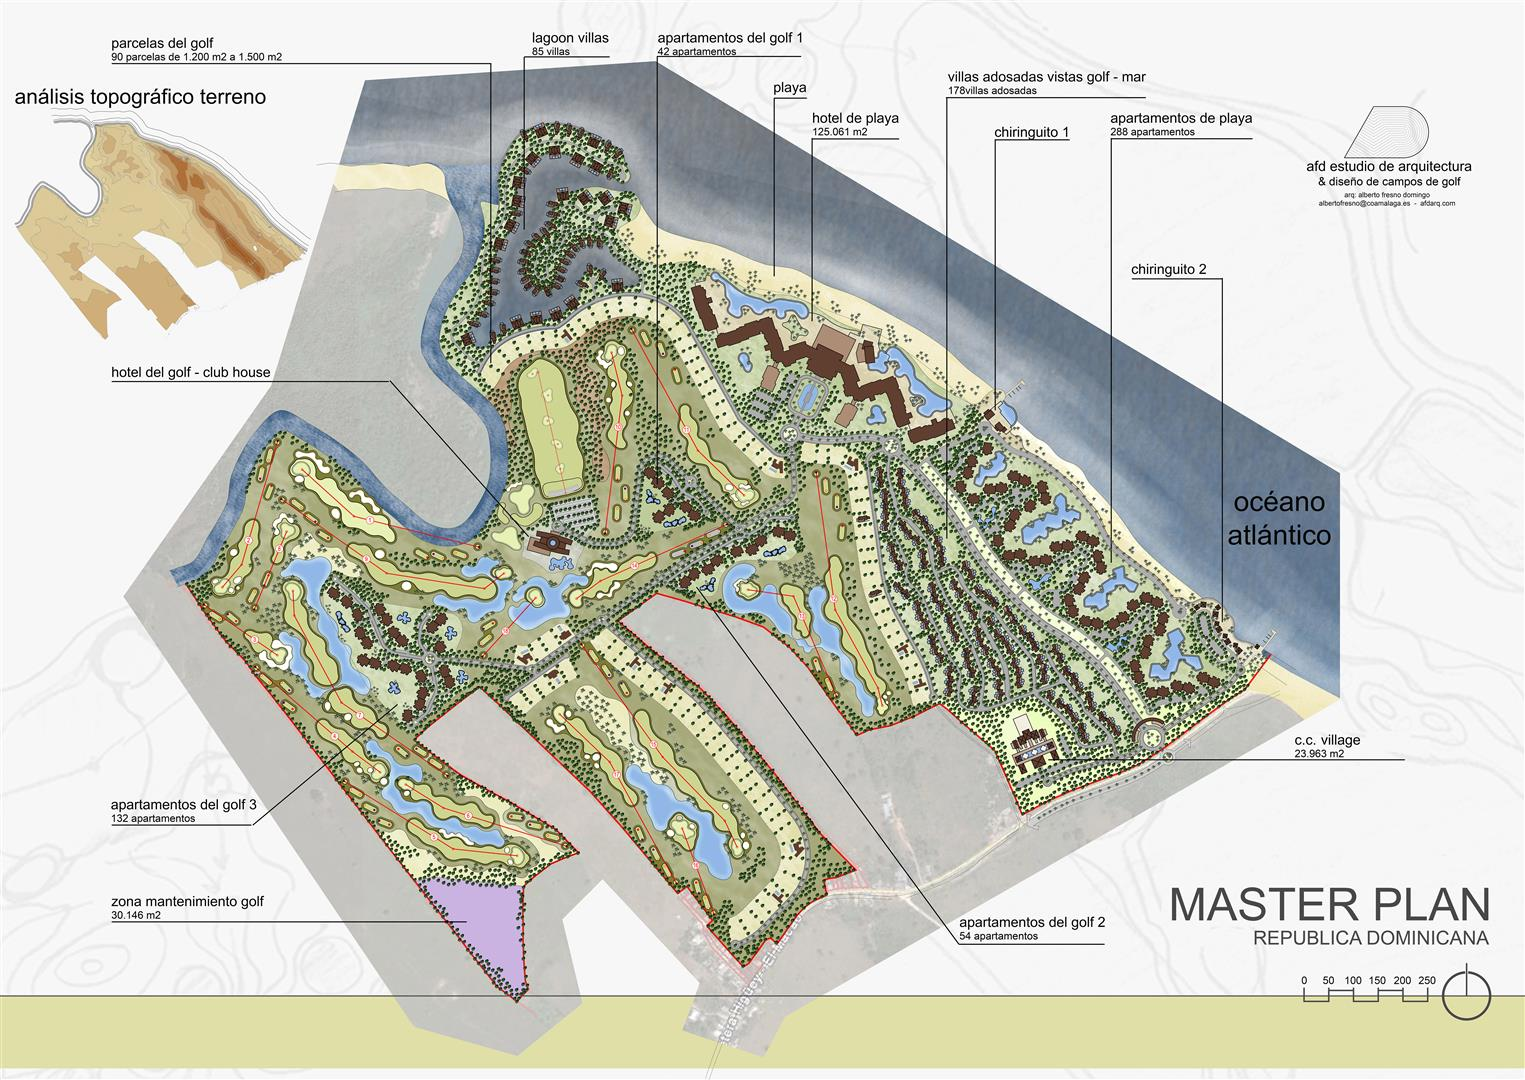 2016 MASTER PLAN REPUBLICA DOMINICANA